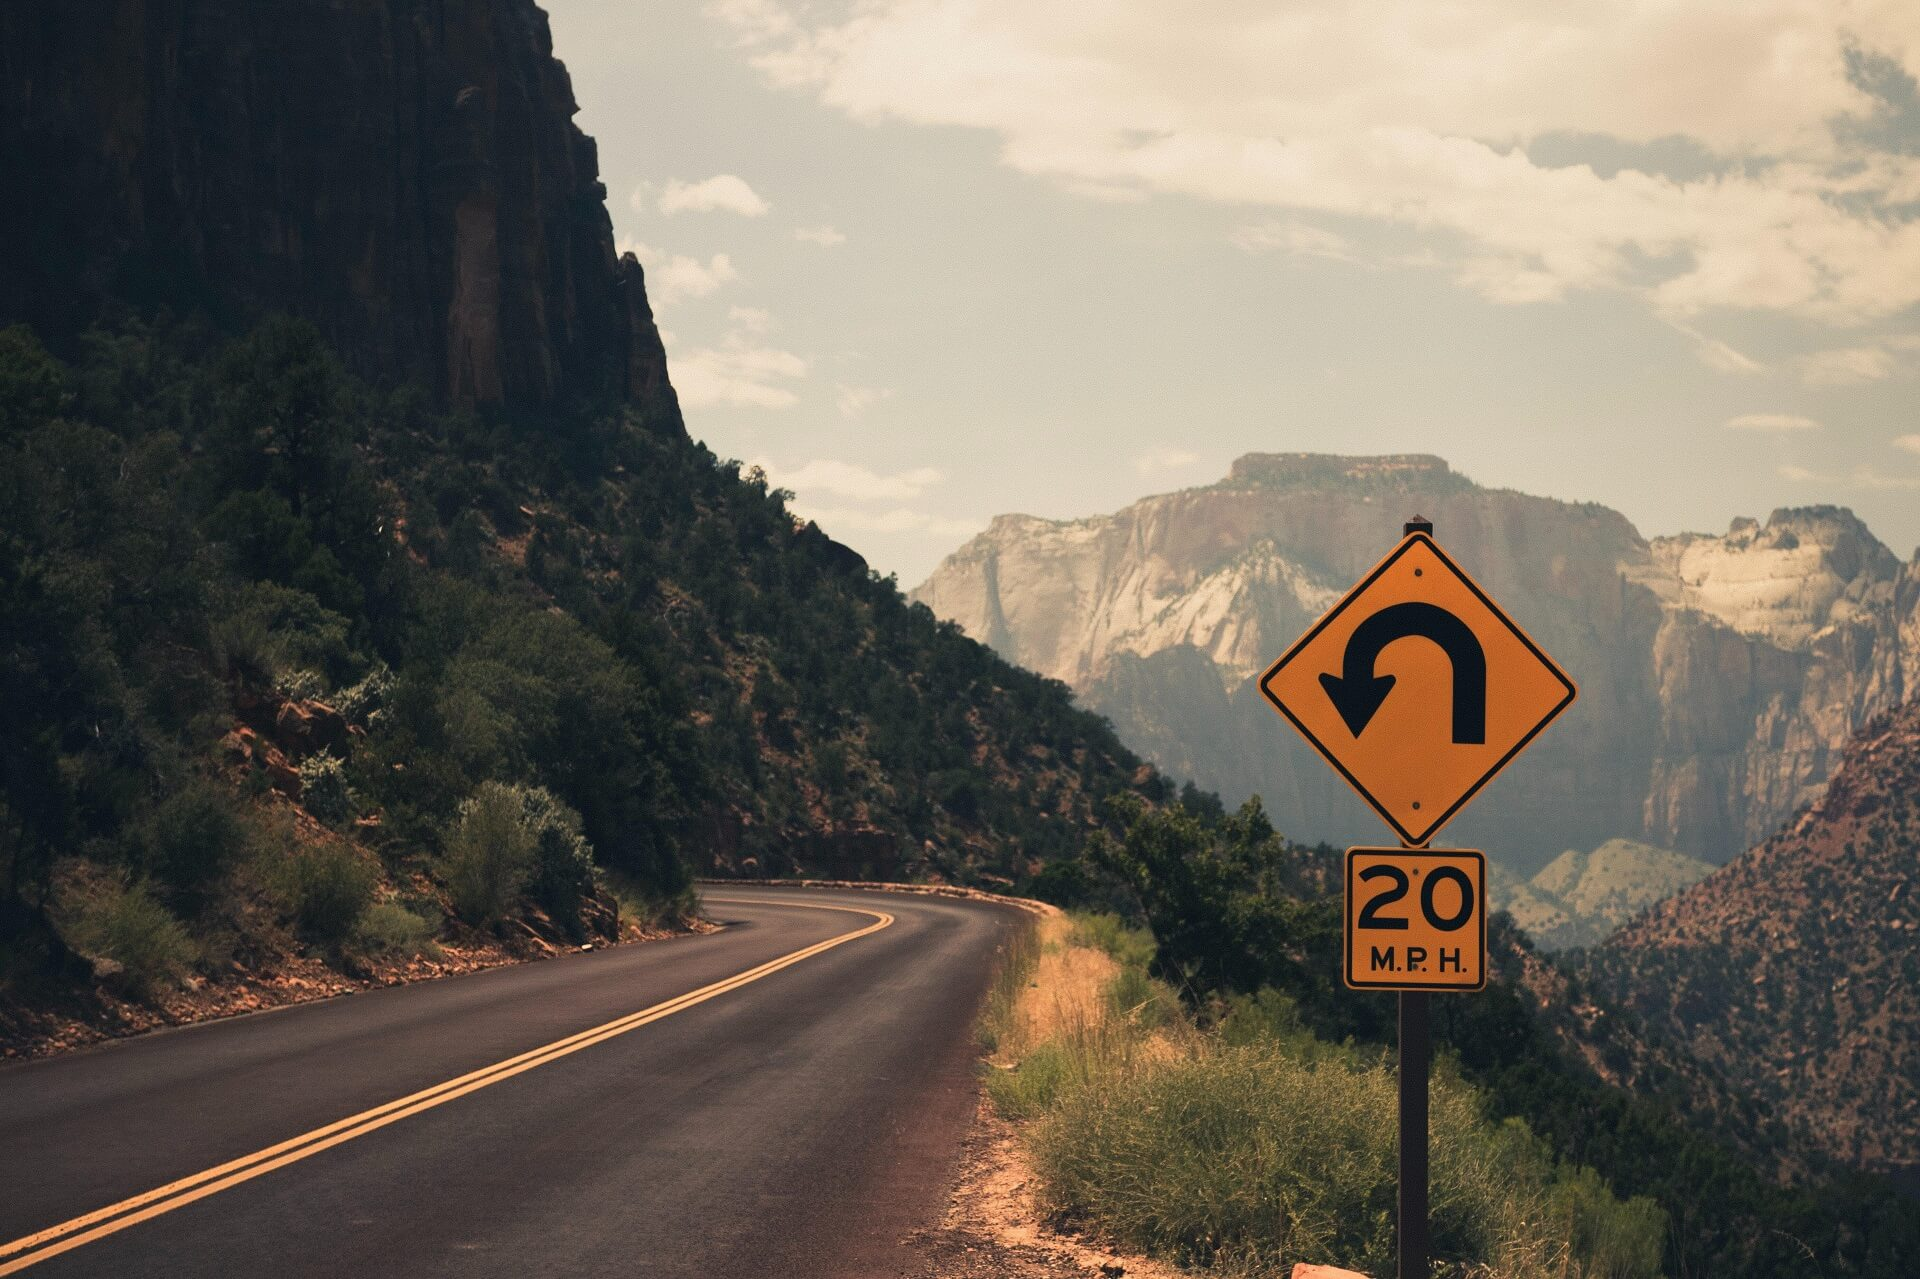 Mountain road with a sign warning the road will curve